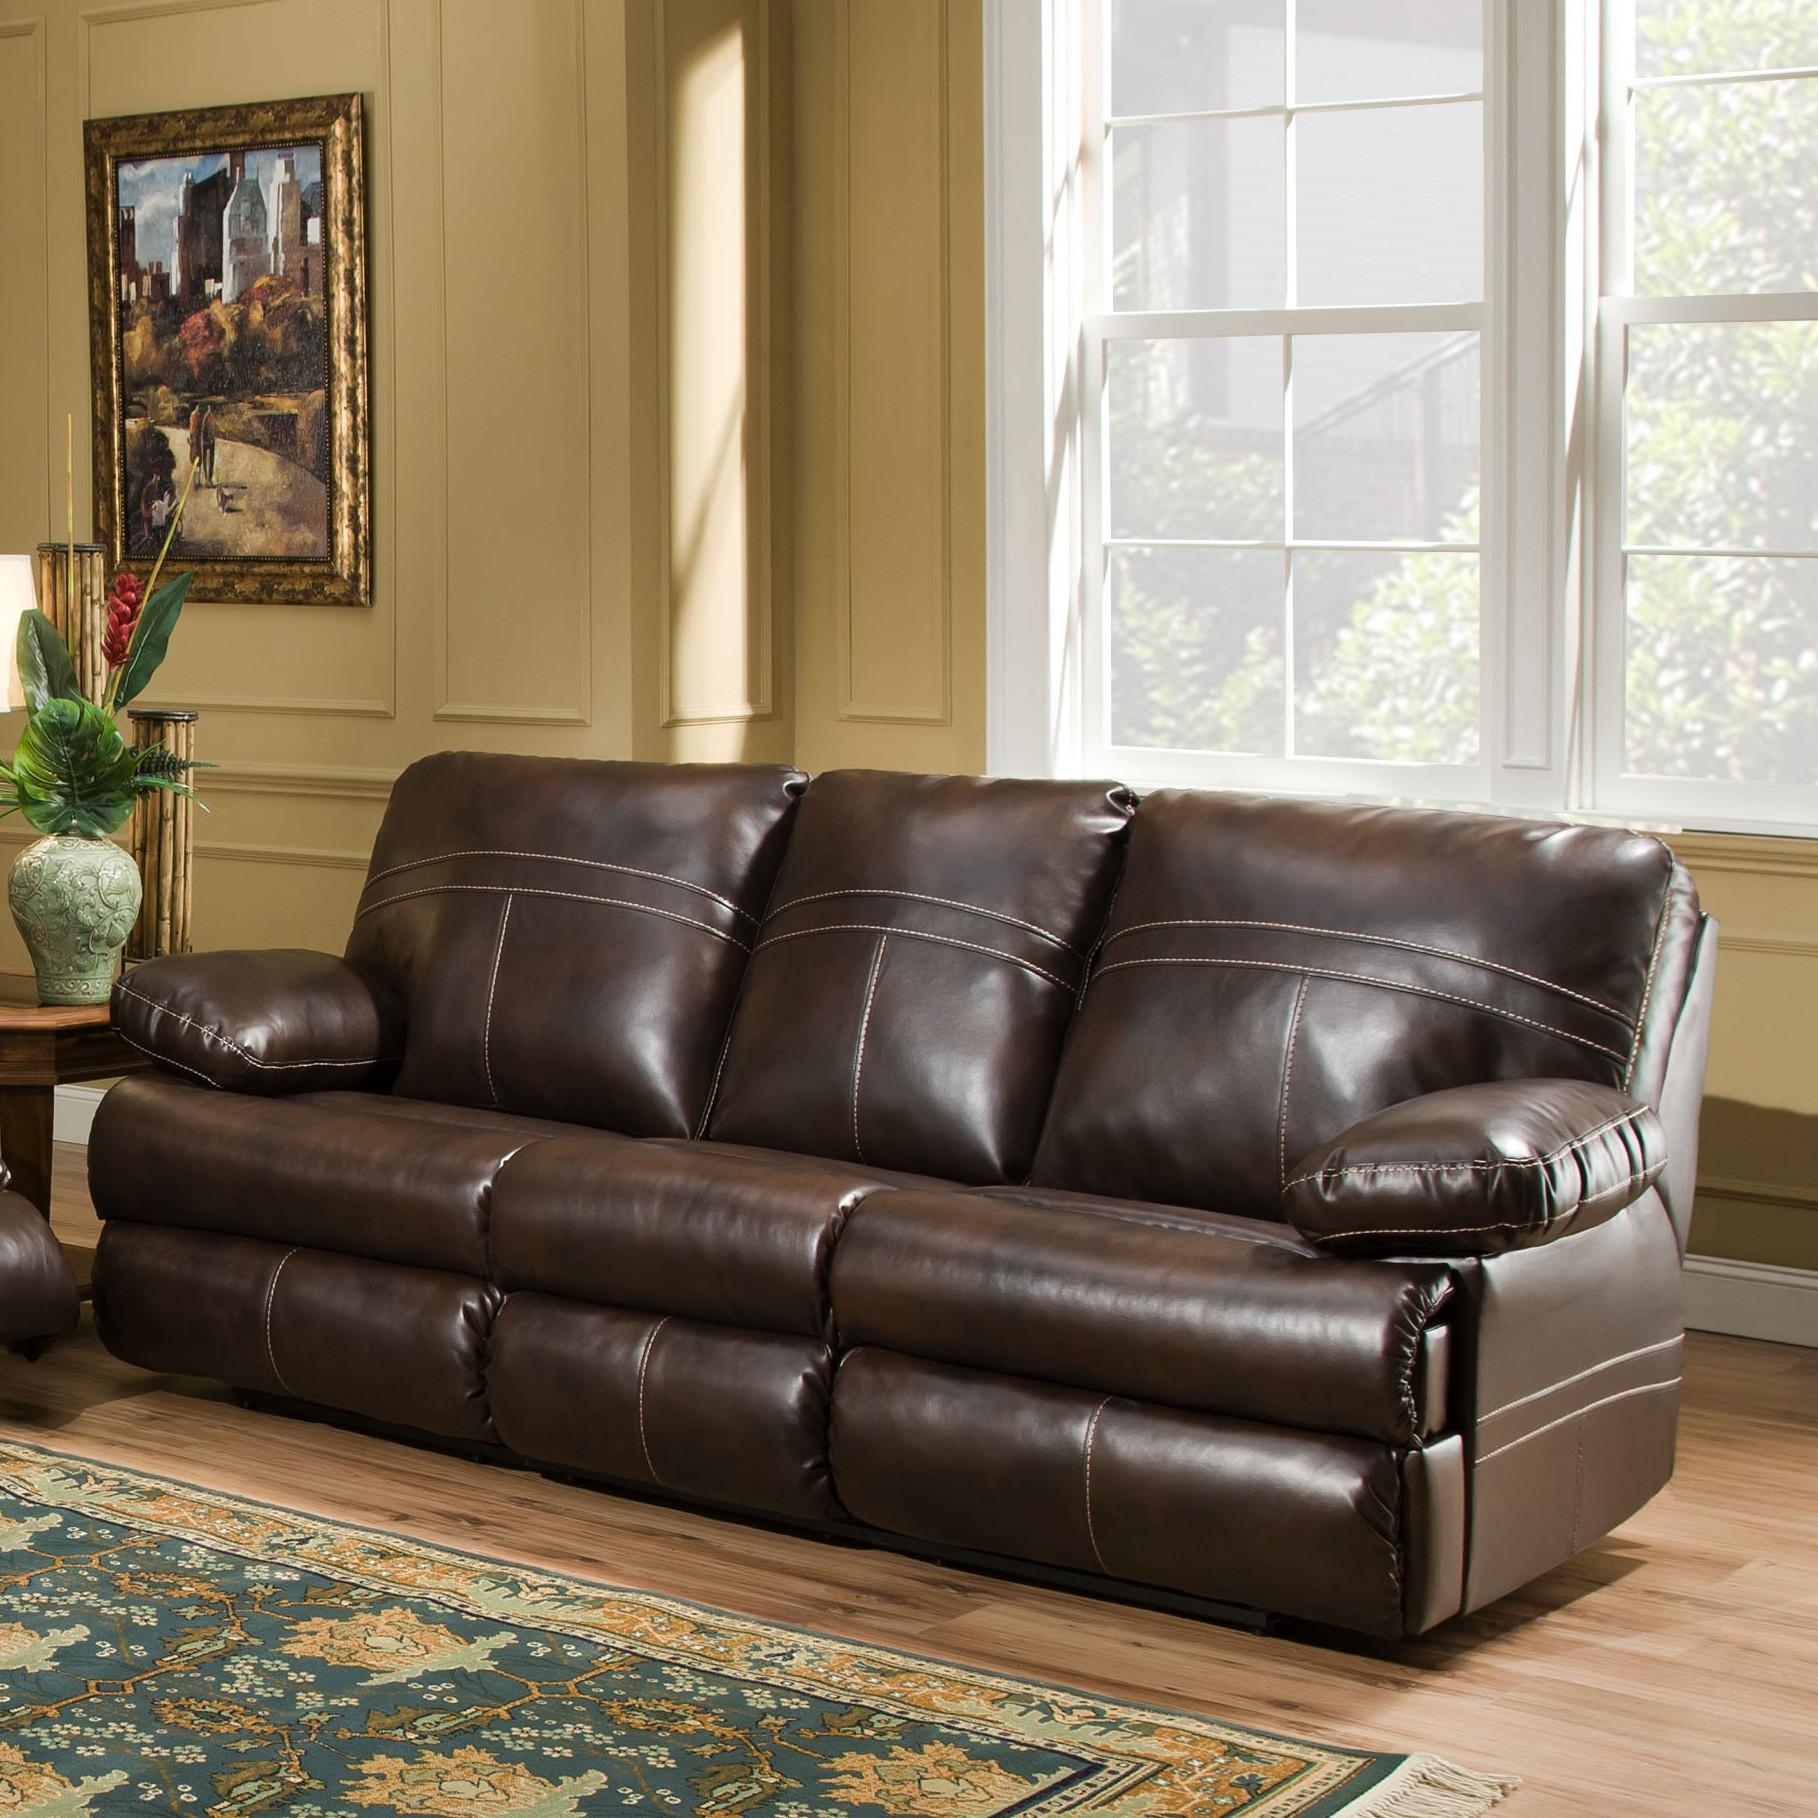 Furniture: Simmons Sectional For Comfortable Seating — Threestems Intended For Big Lots Simmons Furniture (View 6 of 20)